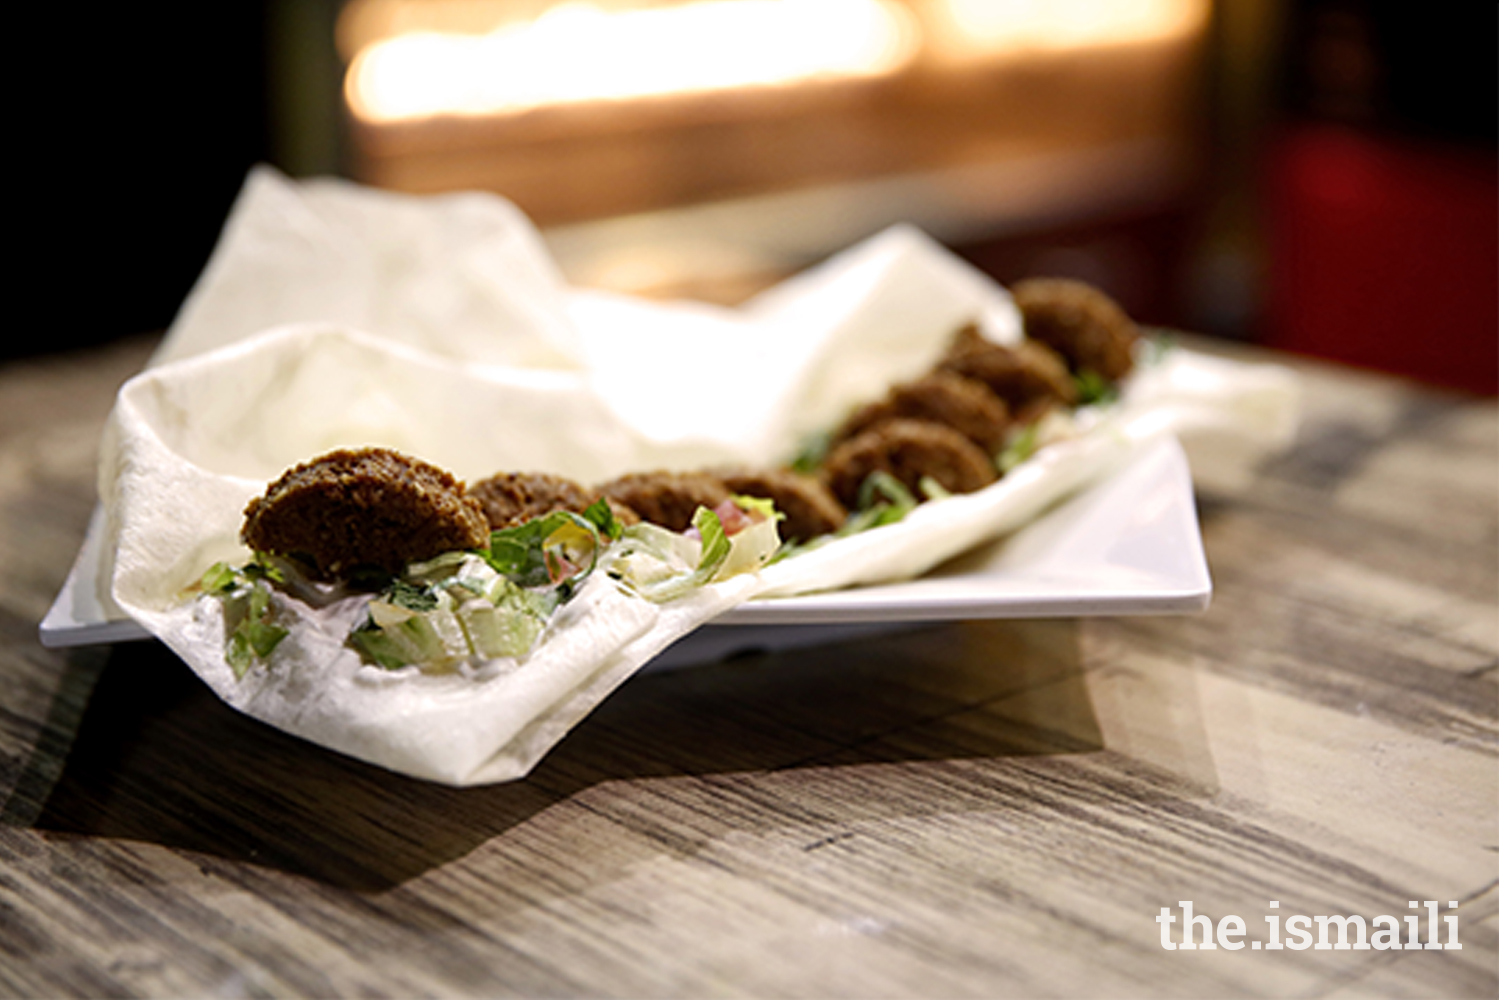 Fried to perfection, falafel are crispy on the outside but soft and tender on the inside.